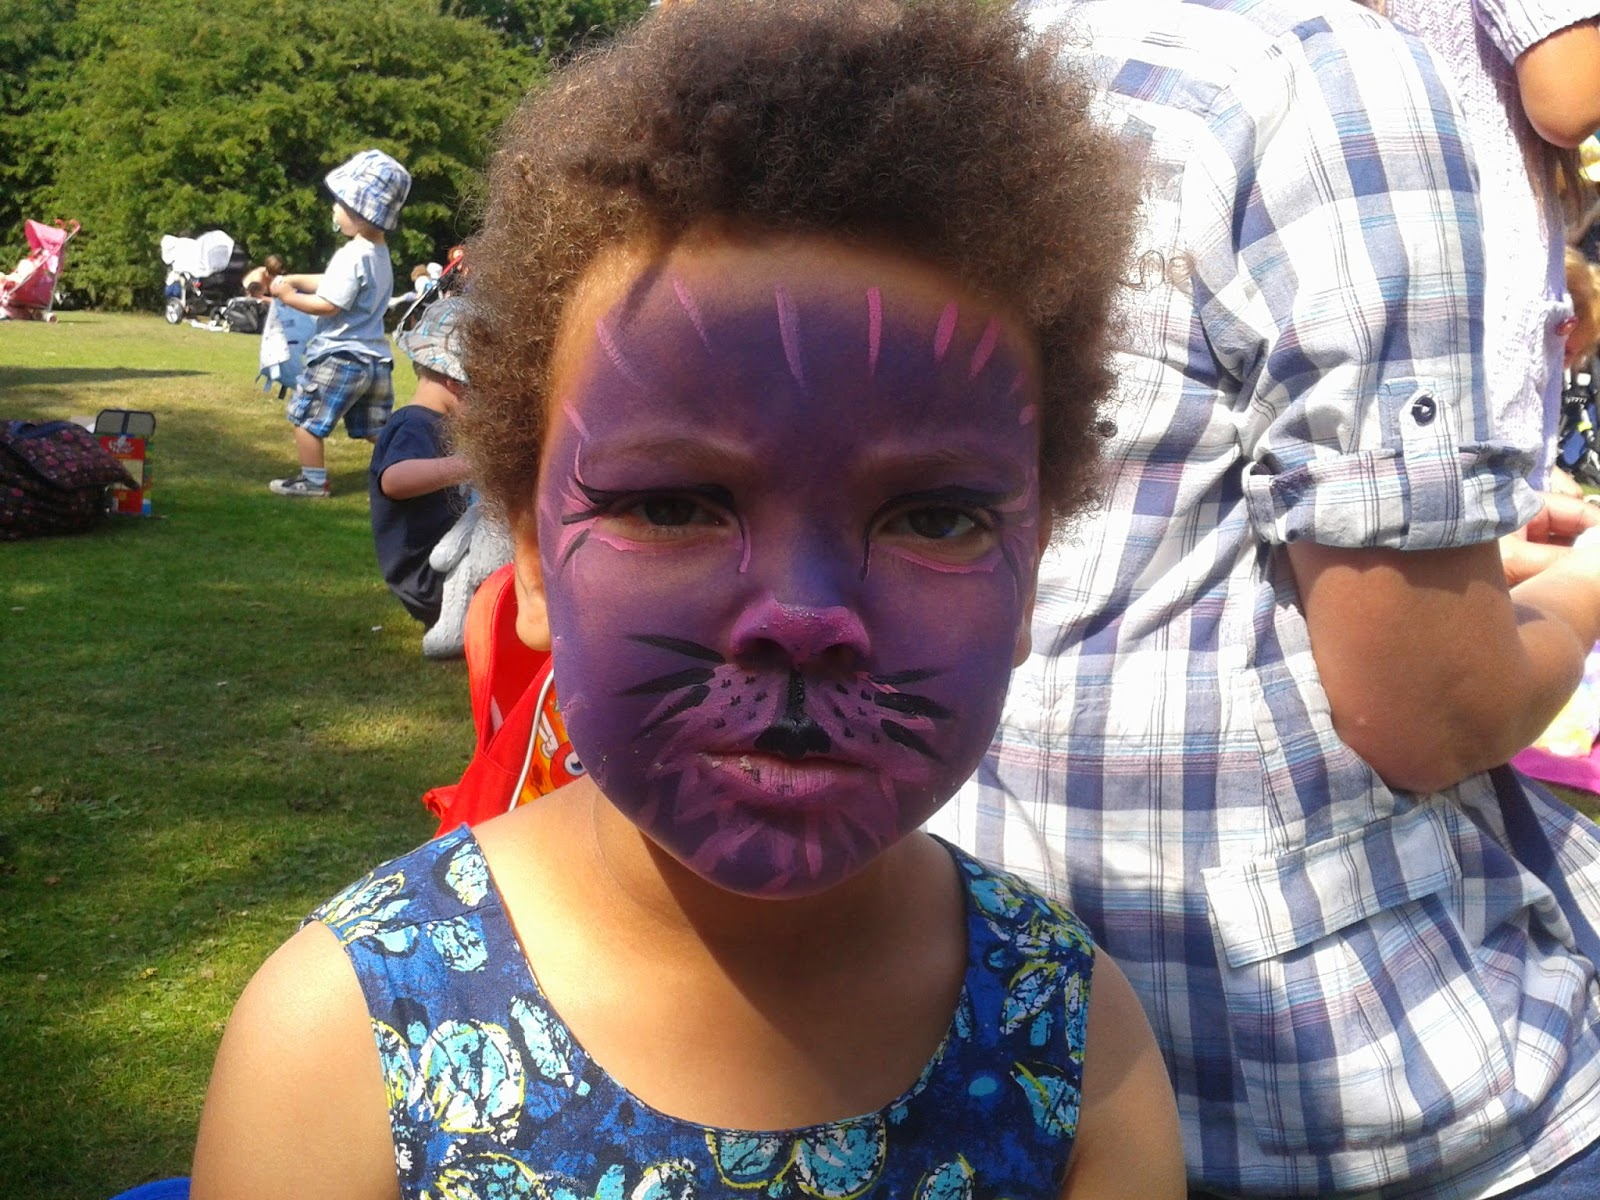 madam wearing face paint to look like a cat. In purple and pink.